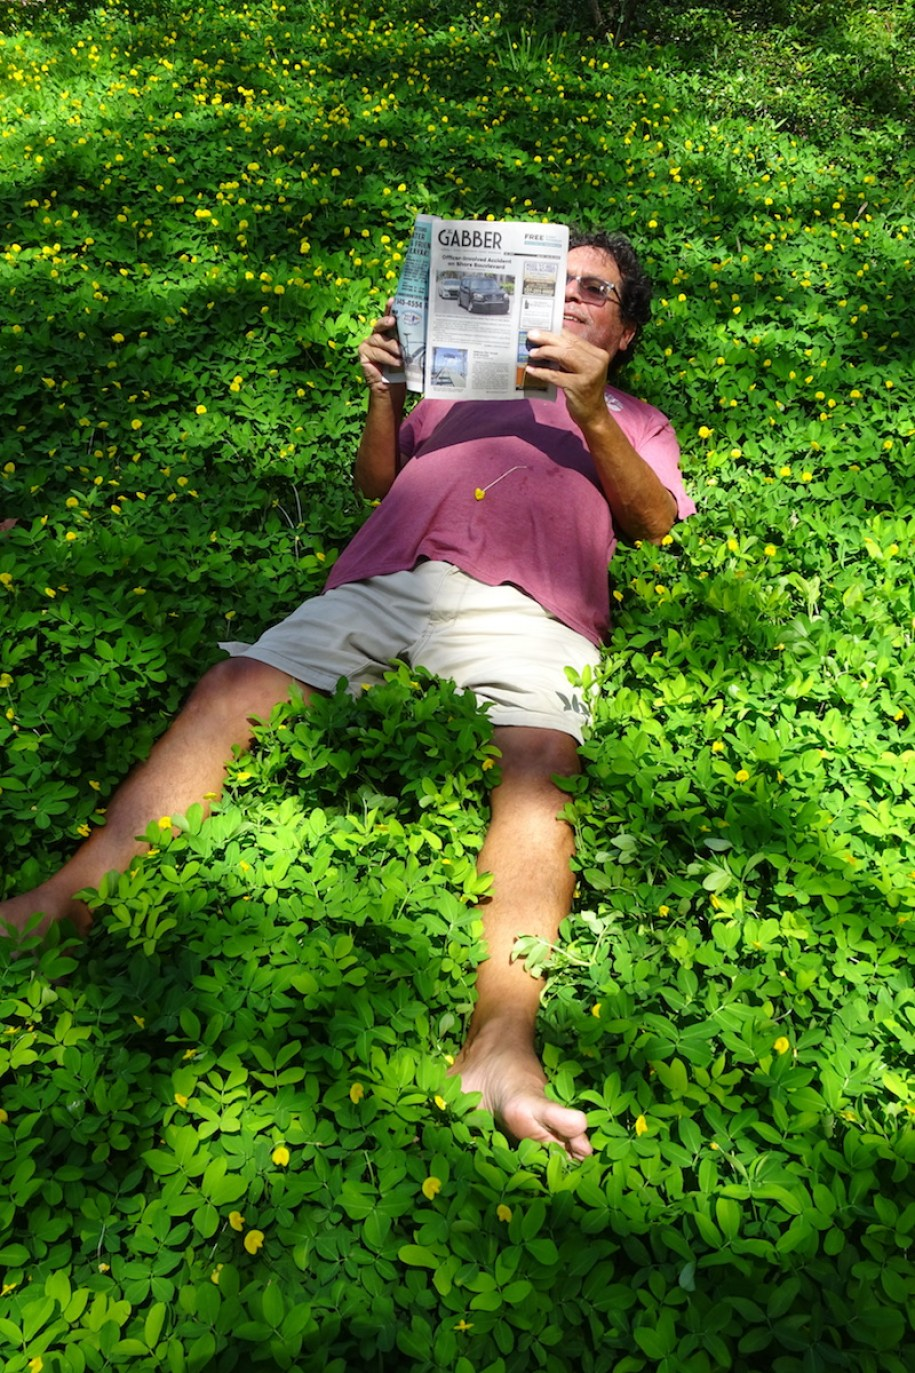 Man in shorts and t-shirt lying on the grass reading a Gabber Newspaper Gulfport Florida